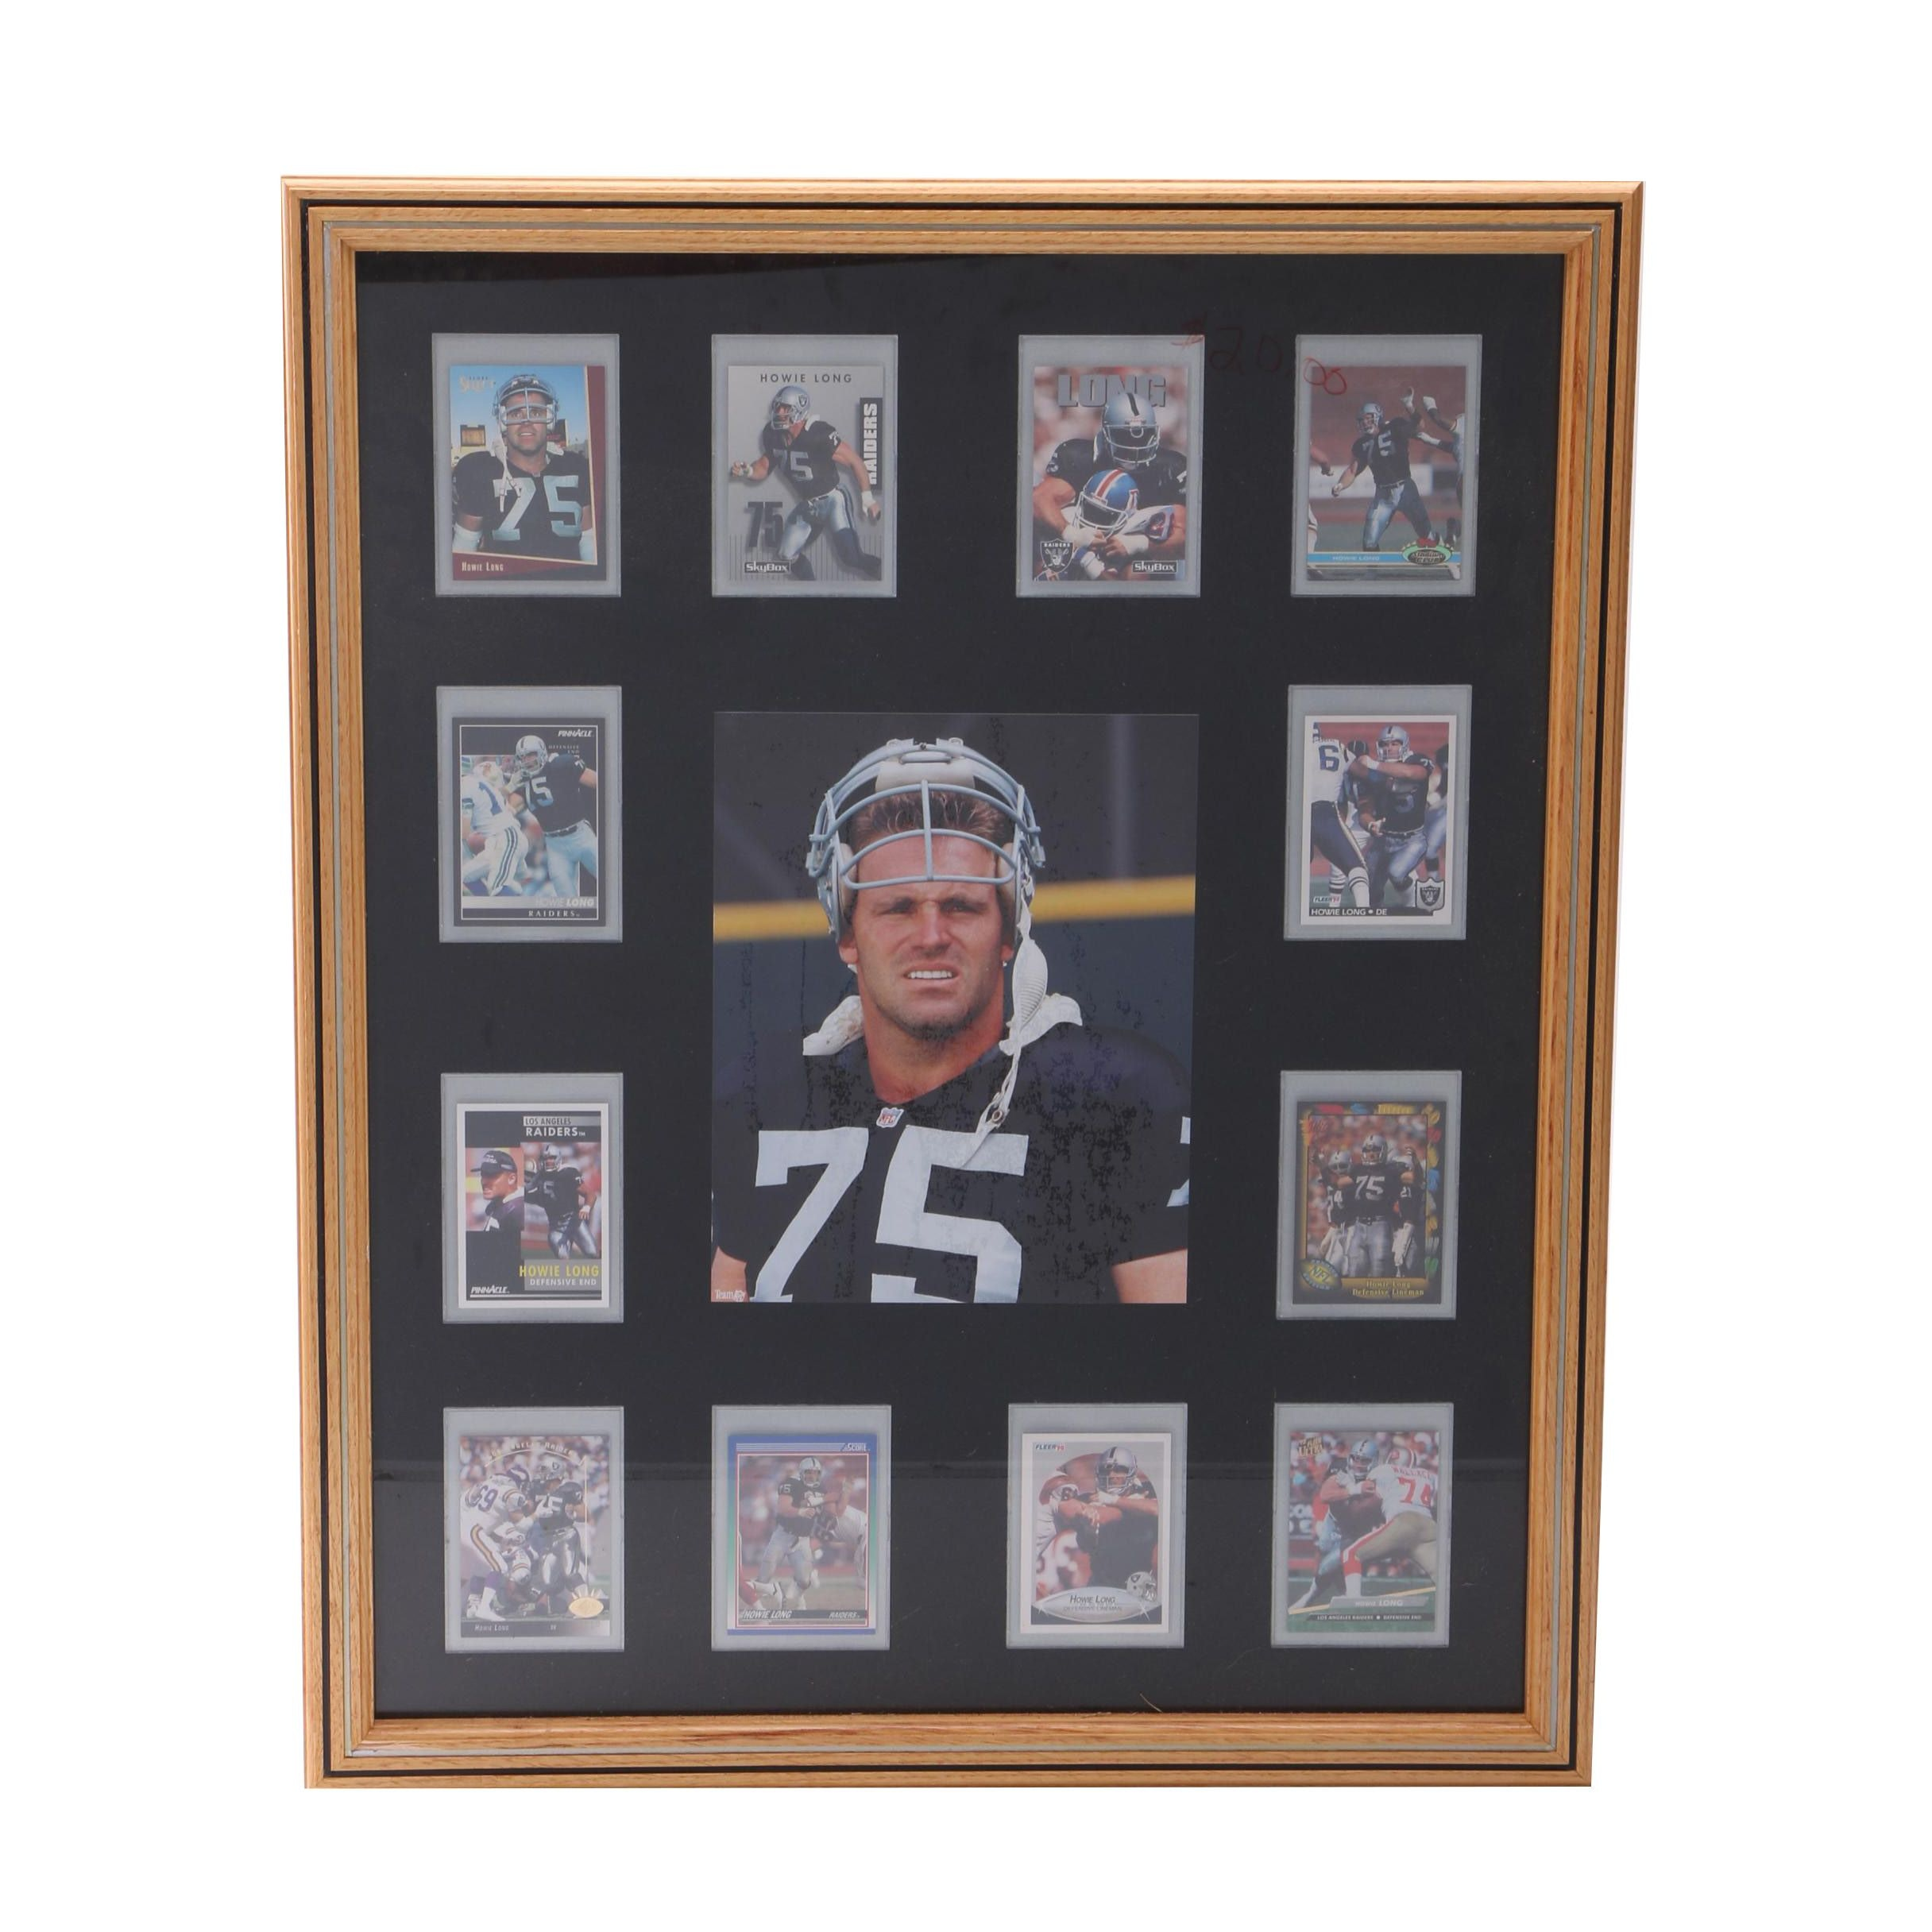 Howie Long Framed Football Playing Card Collage